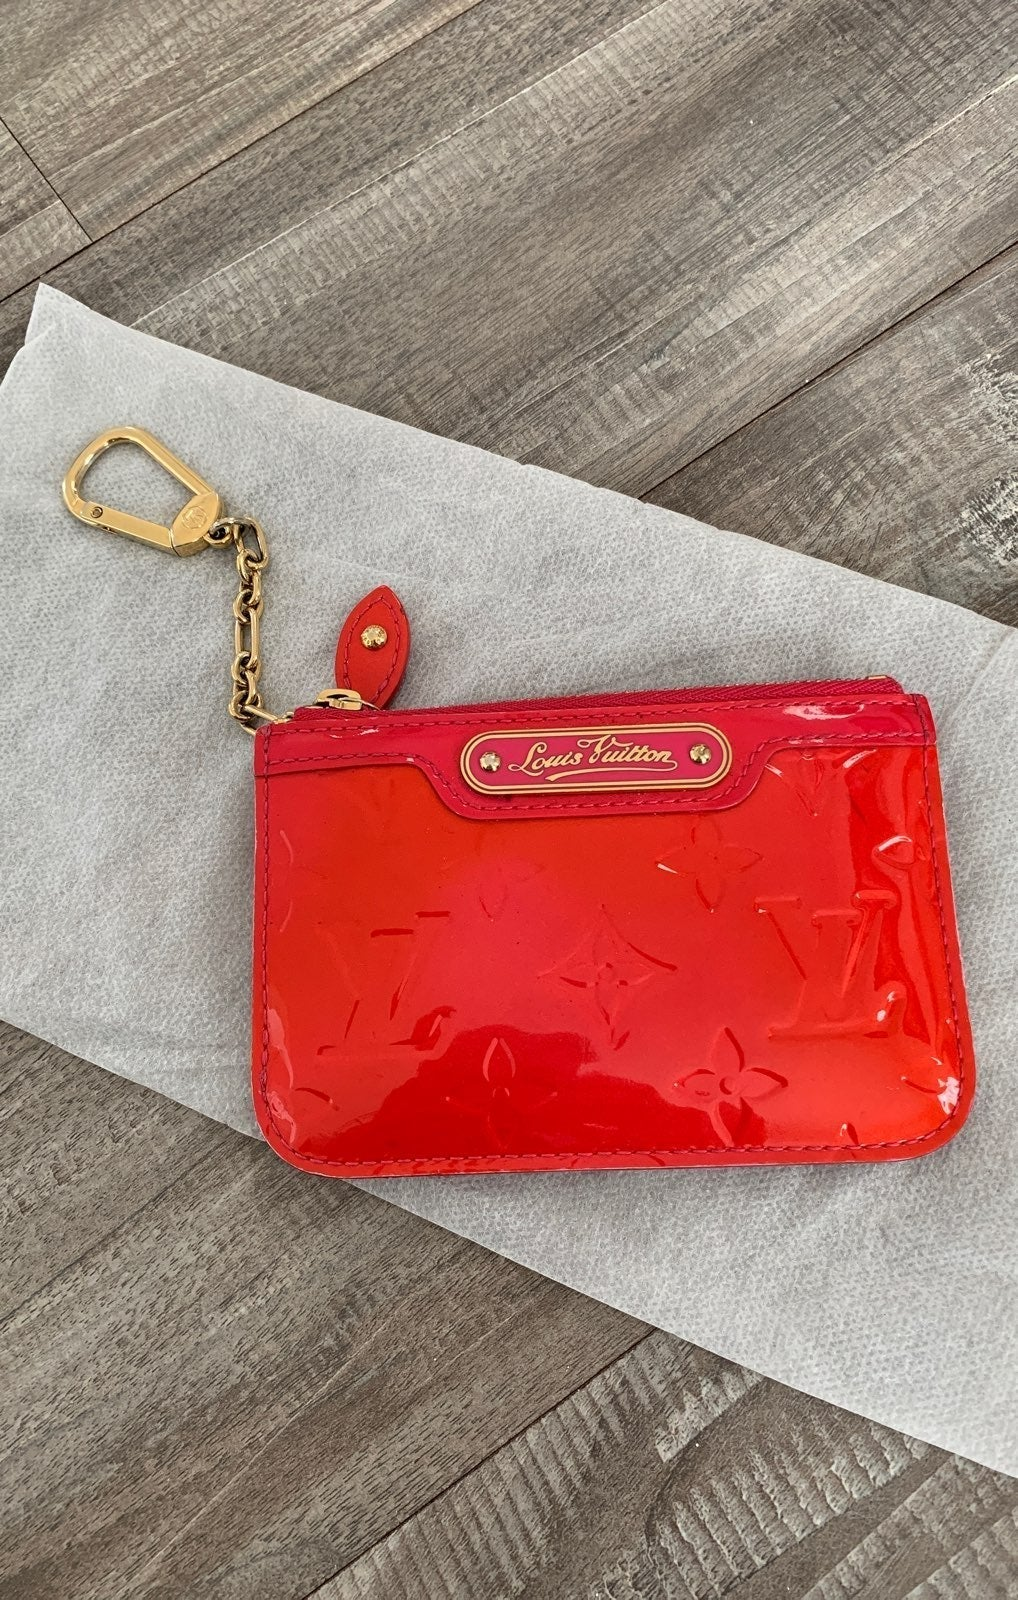 Louis vuitton red cles coin pouch wallet